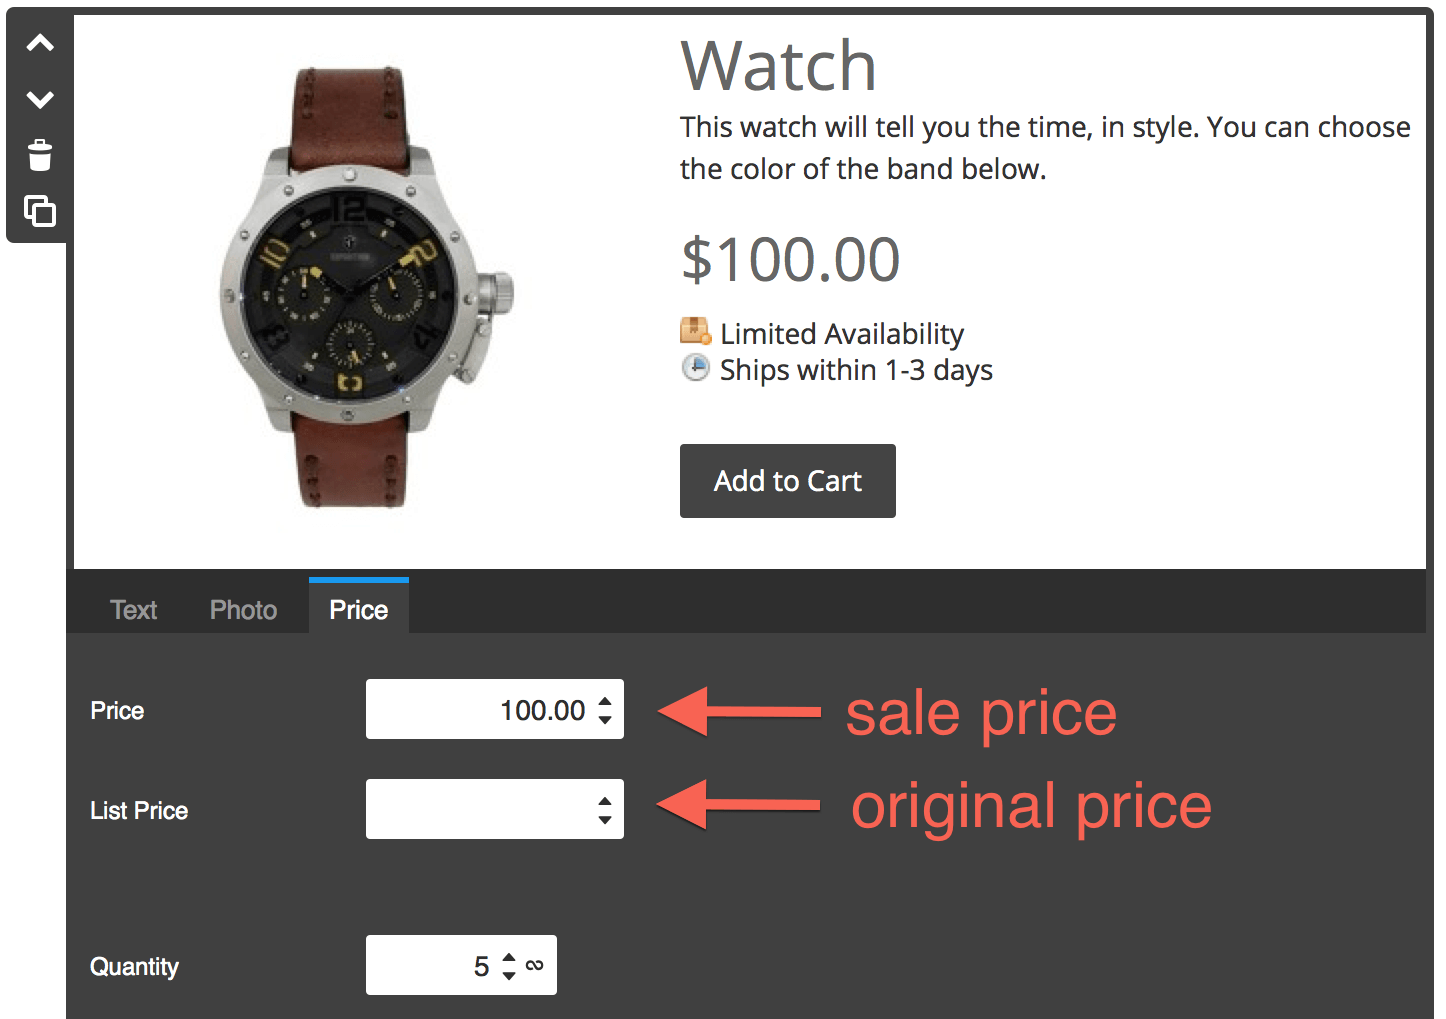 Set the list price and the sale price